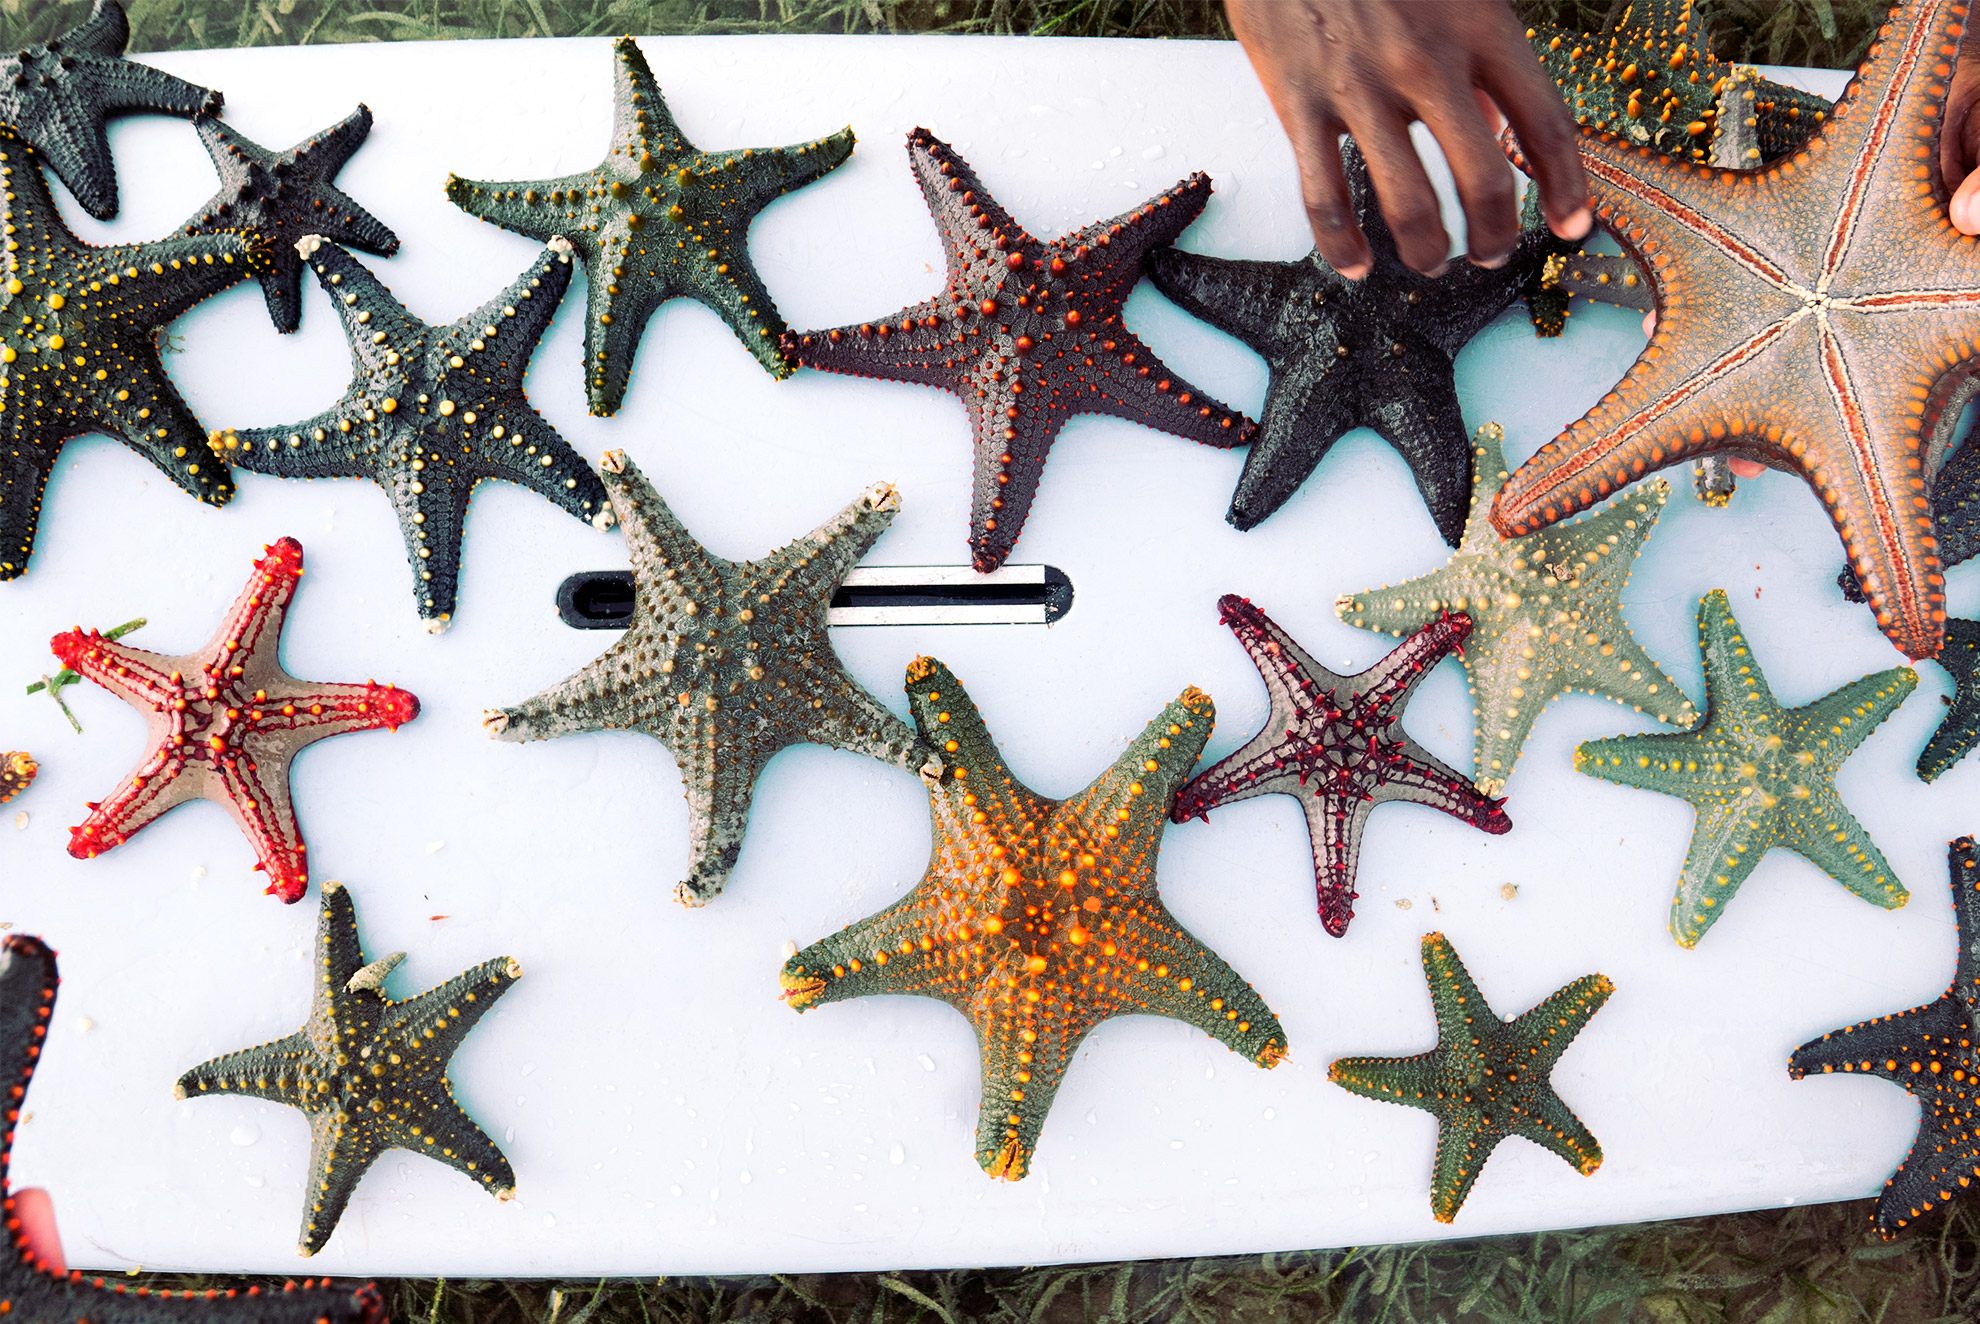 Many colorful starfish